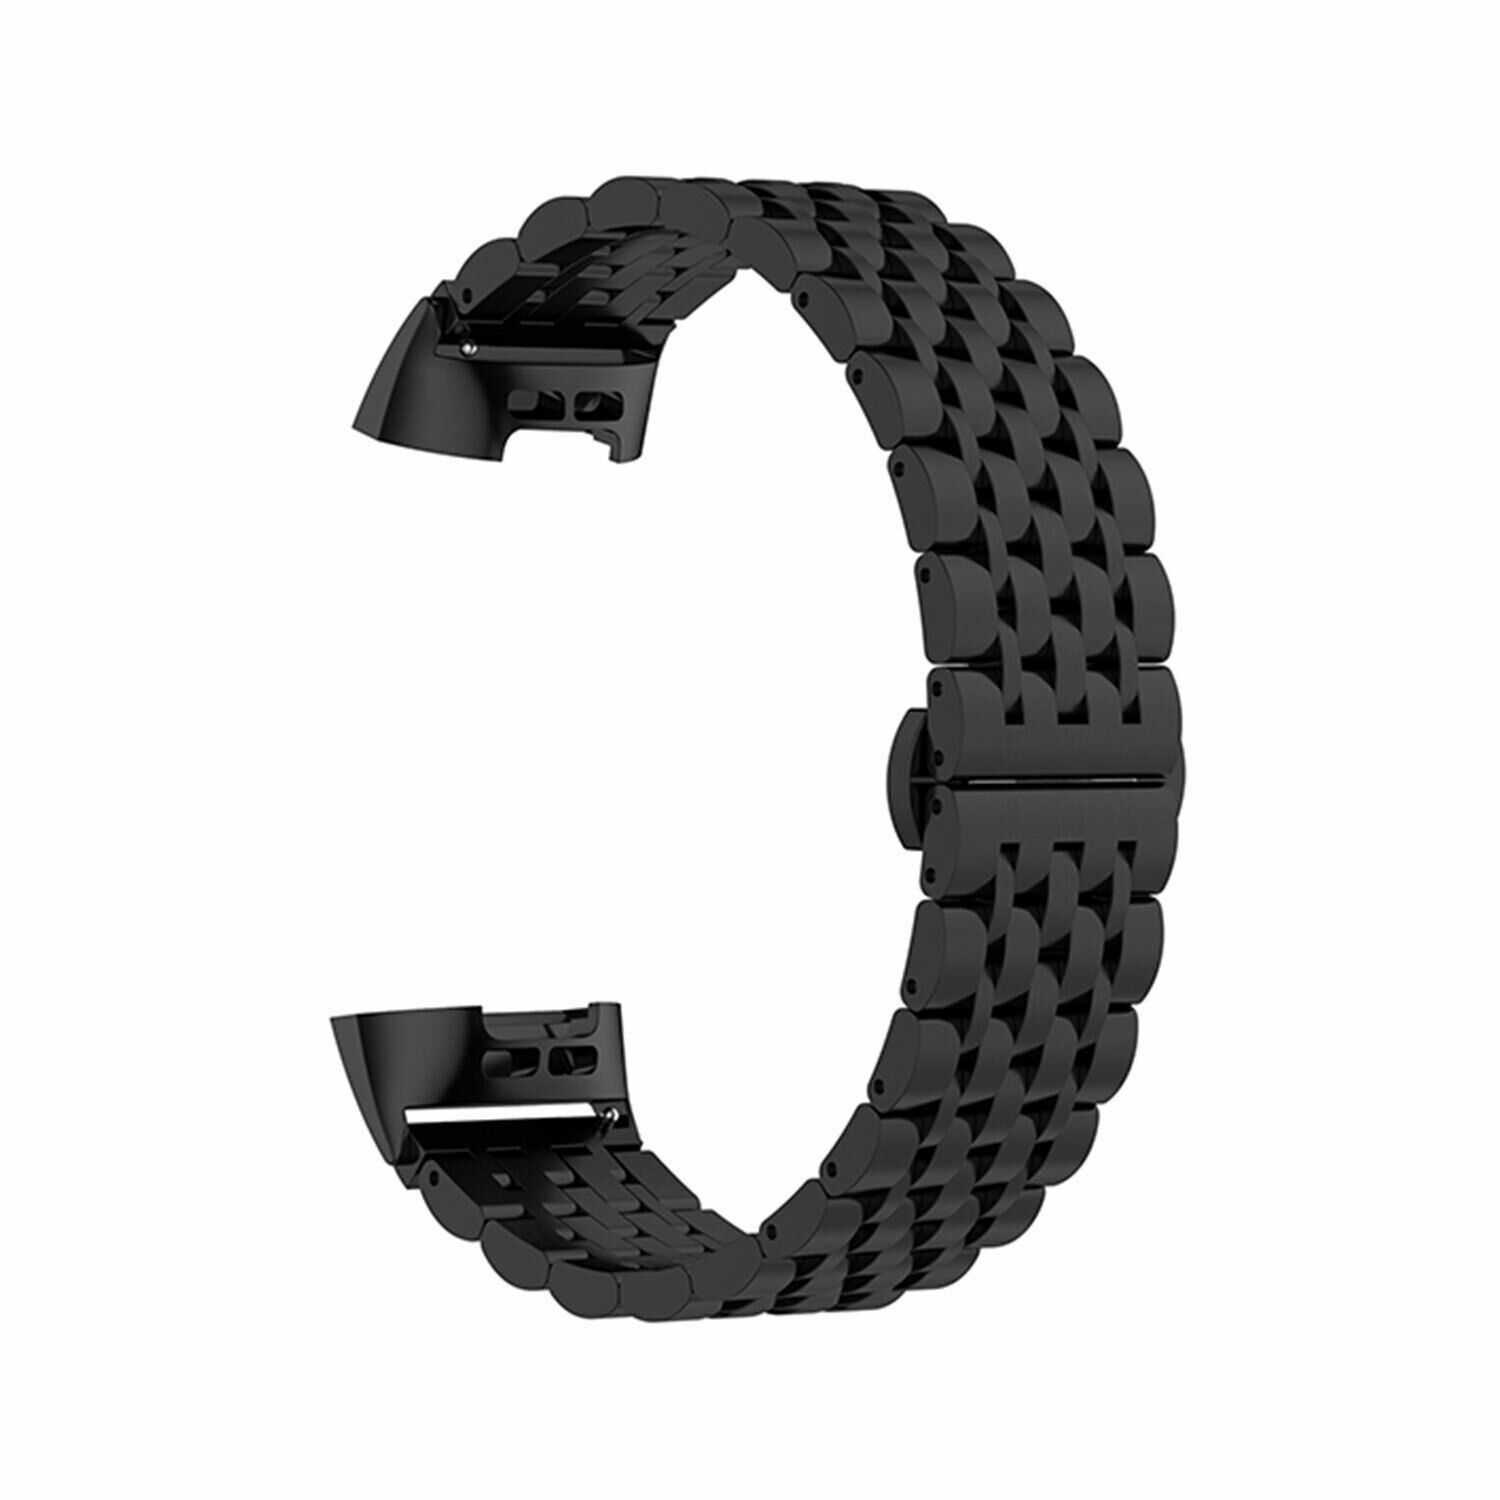 Aquarius Metal Watch Band for Fitbit Charge 3 Black